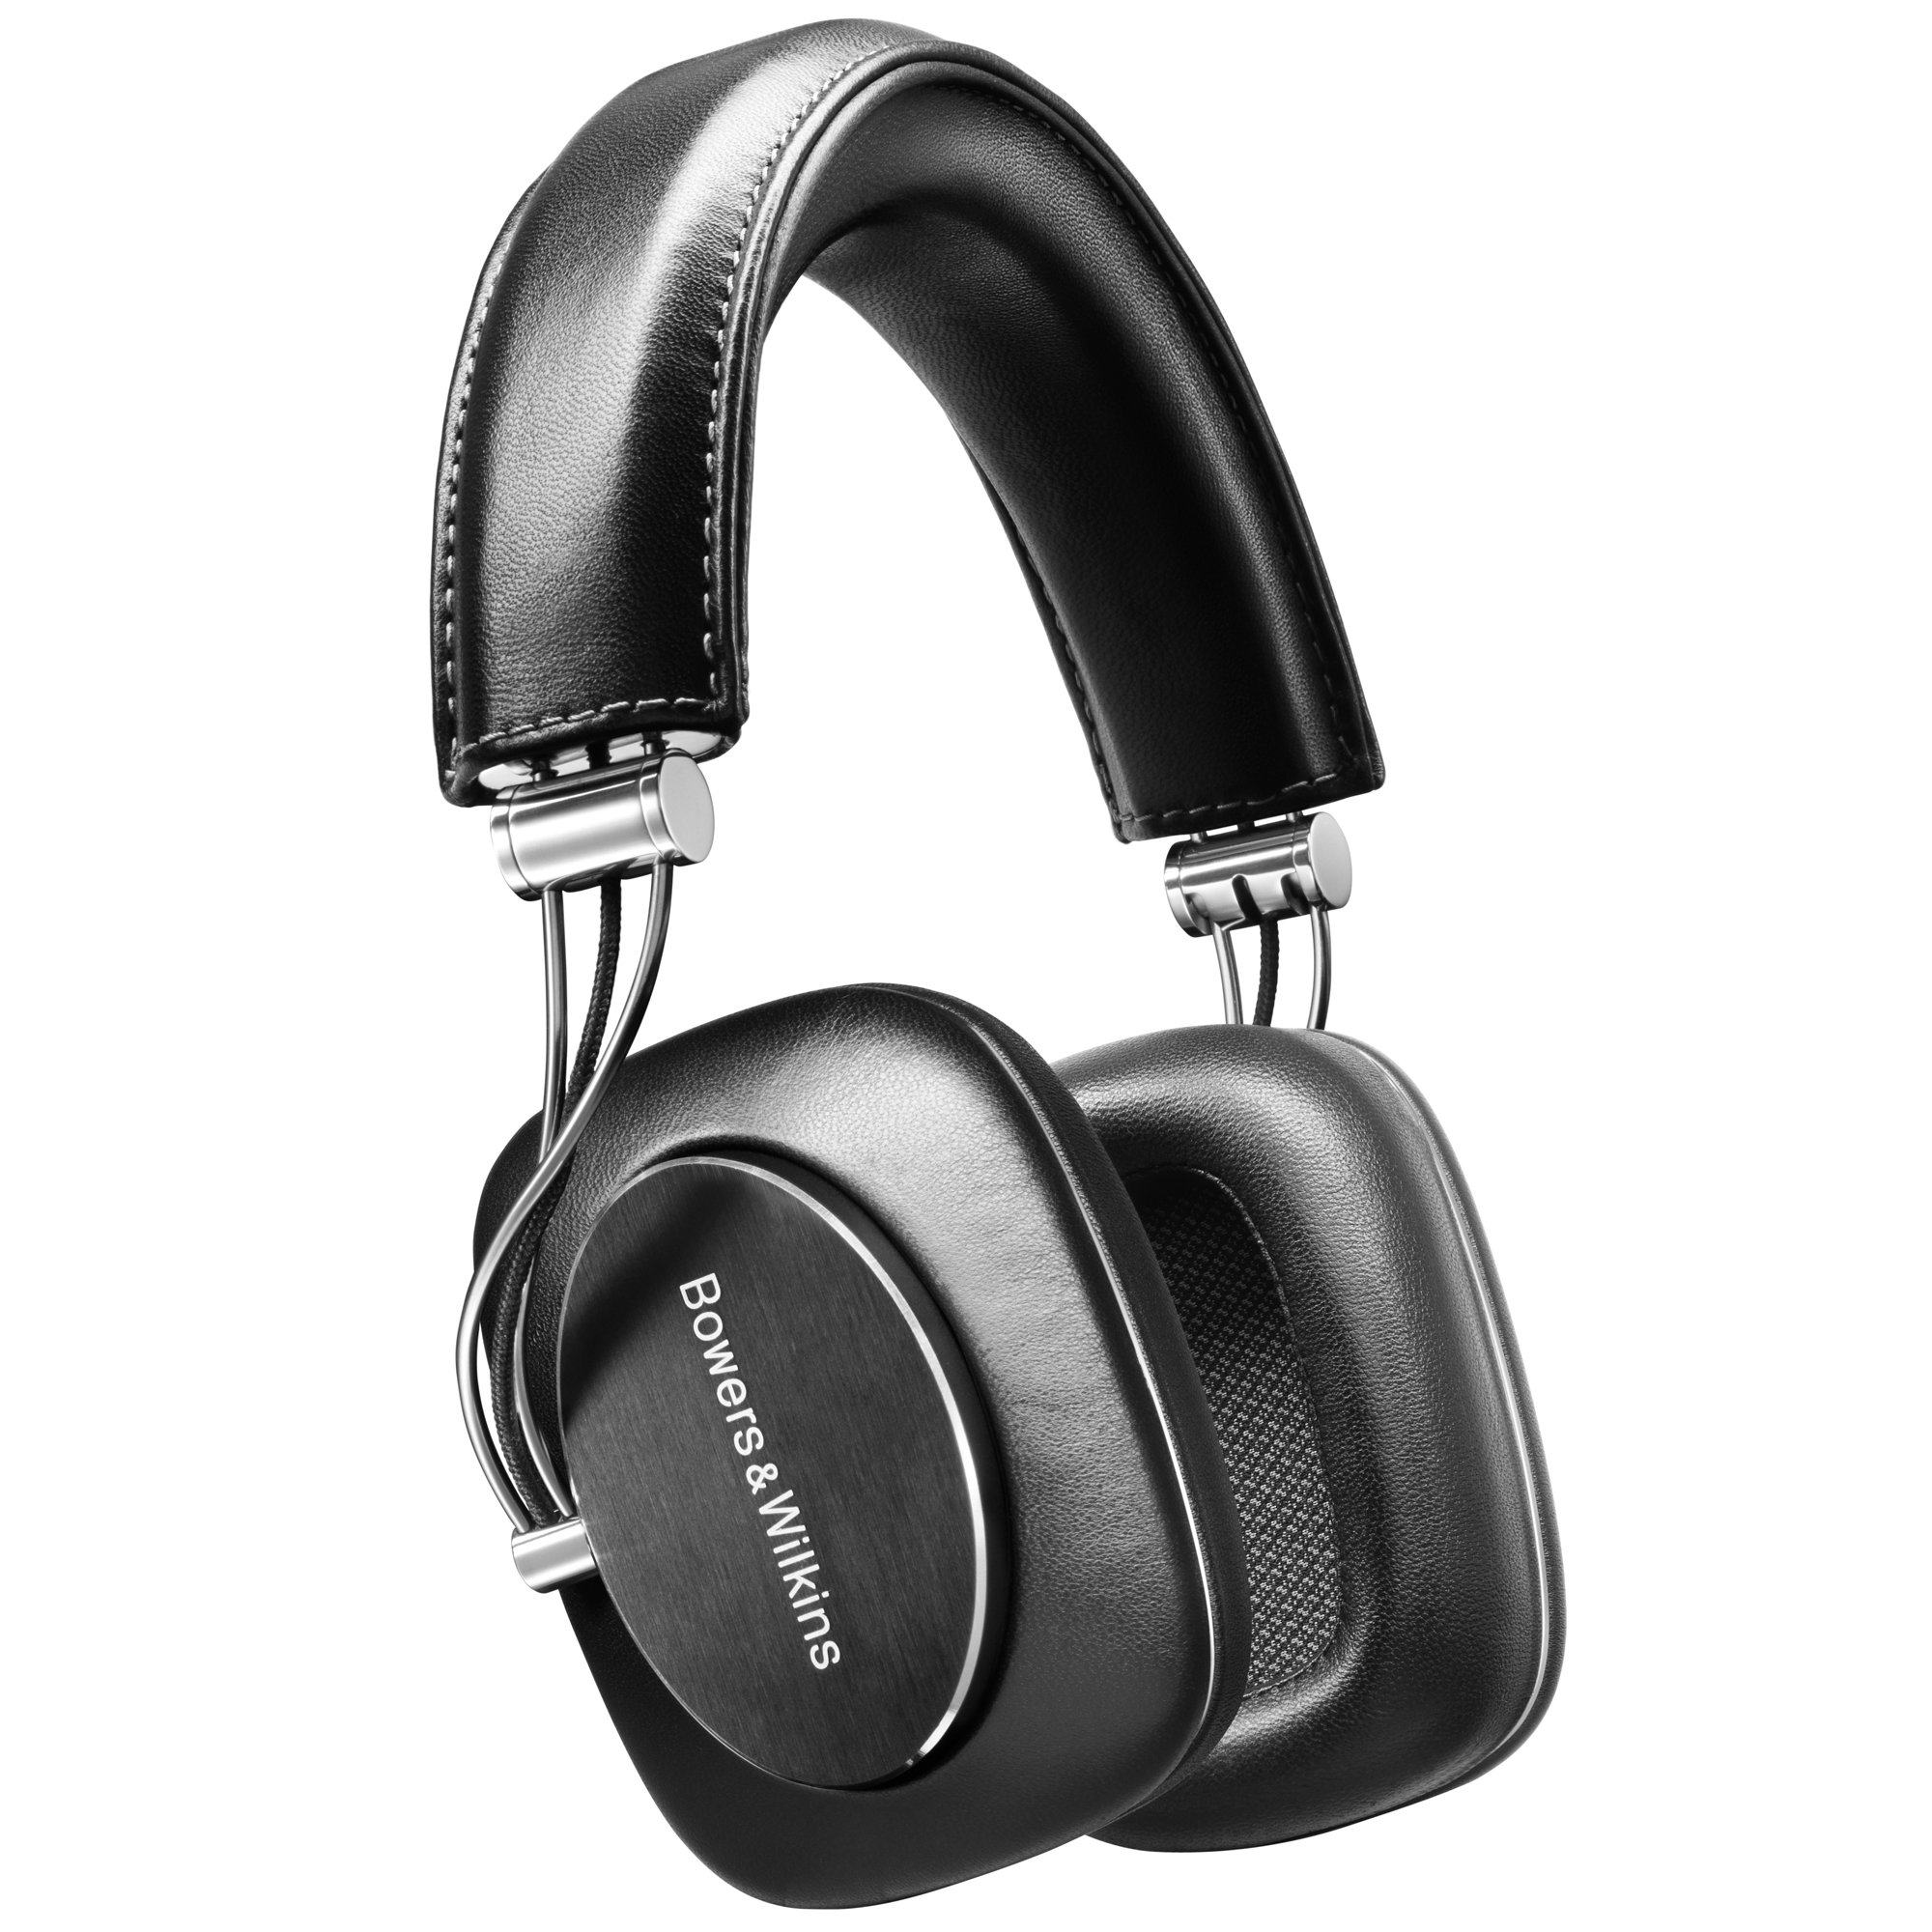 Bowers & Wilkins P7 Wired Over Ear Headphones, Black by Bowers & Wilkins